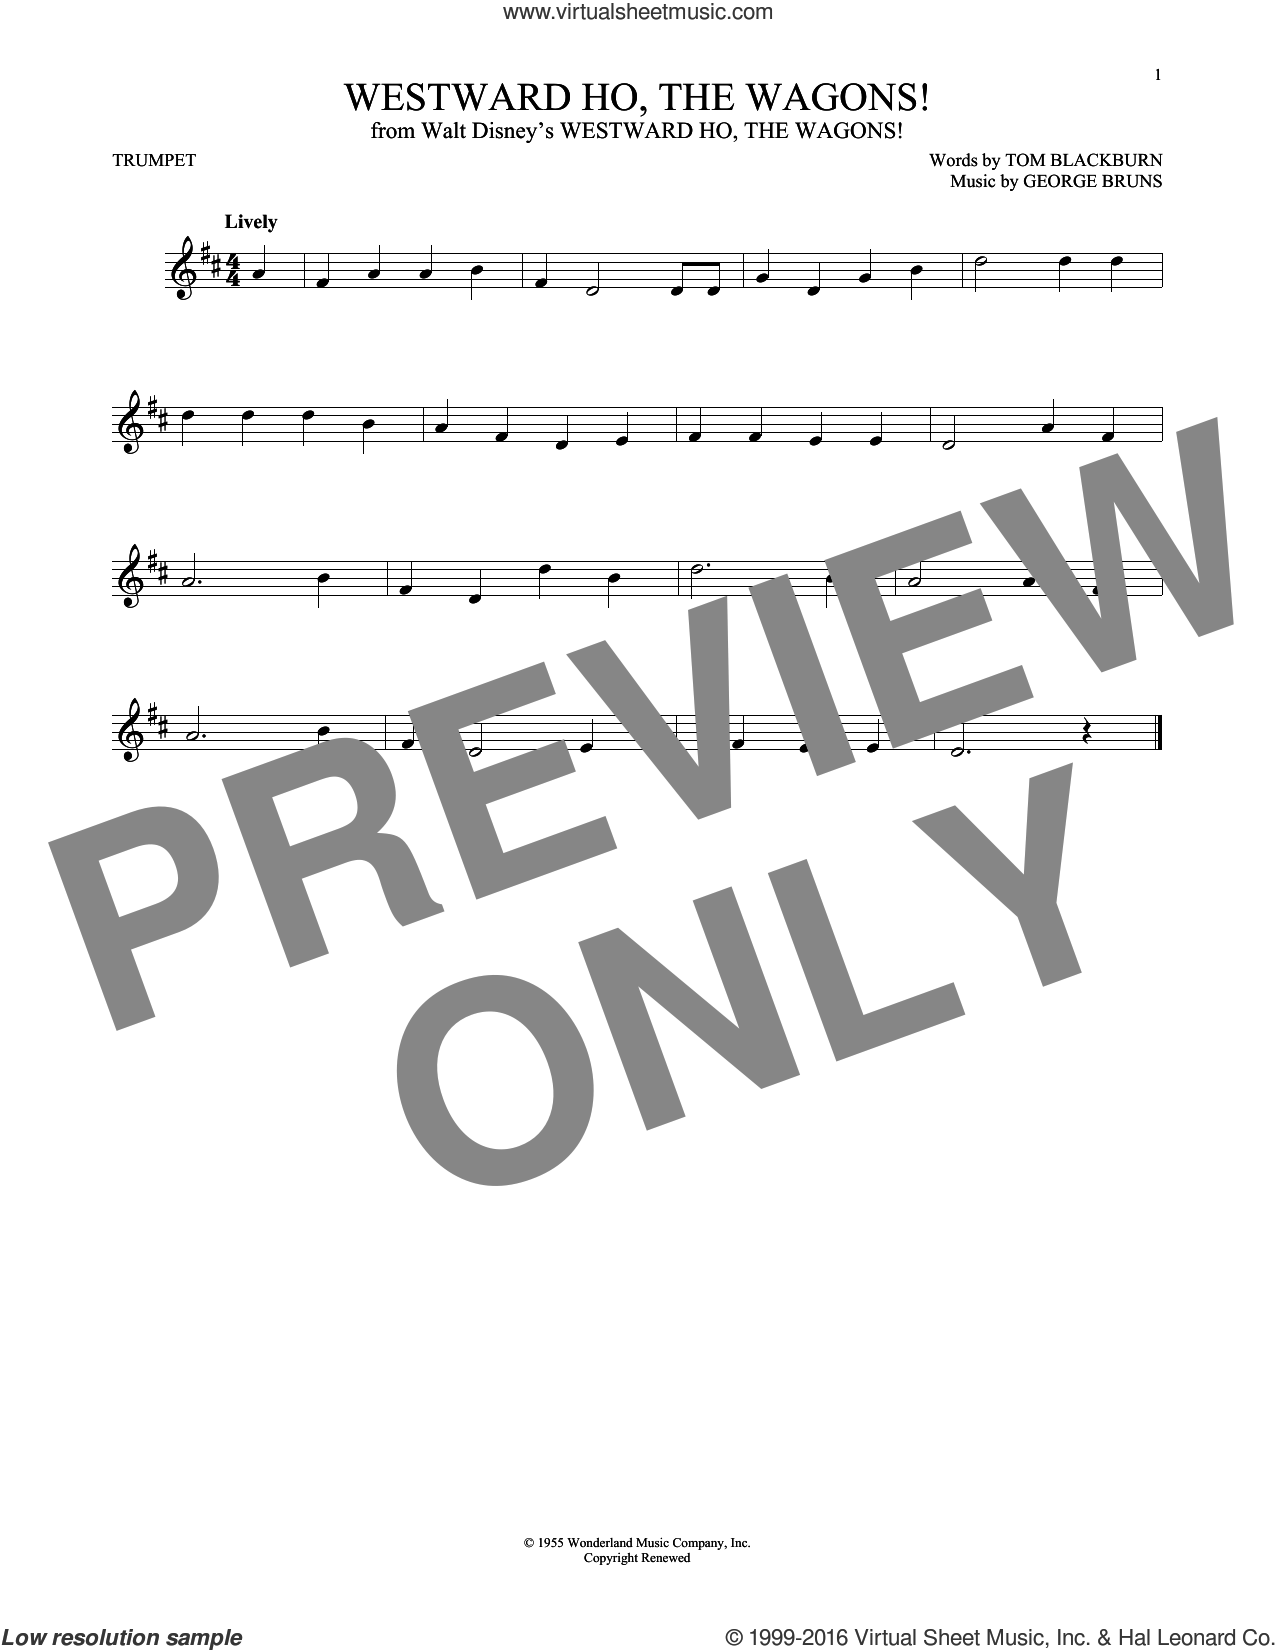 Westward Ho, The Wagons! sheet music for trumpet solo by George Bruns and Tom Blackburn, intermediate skill level